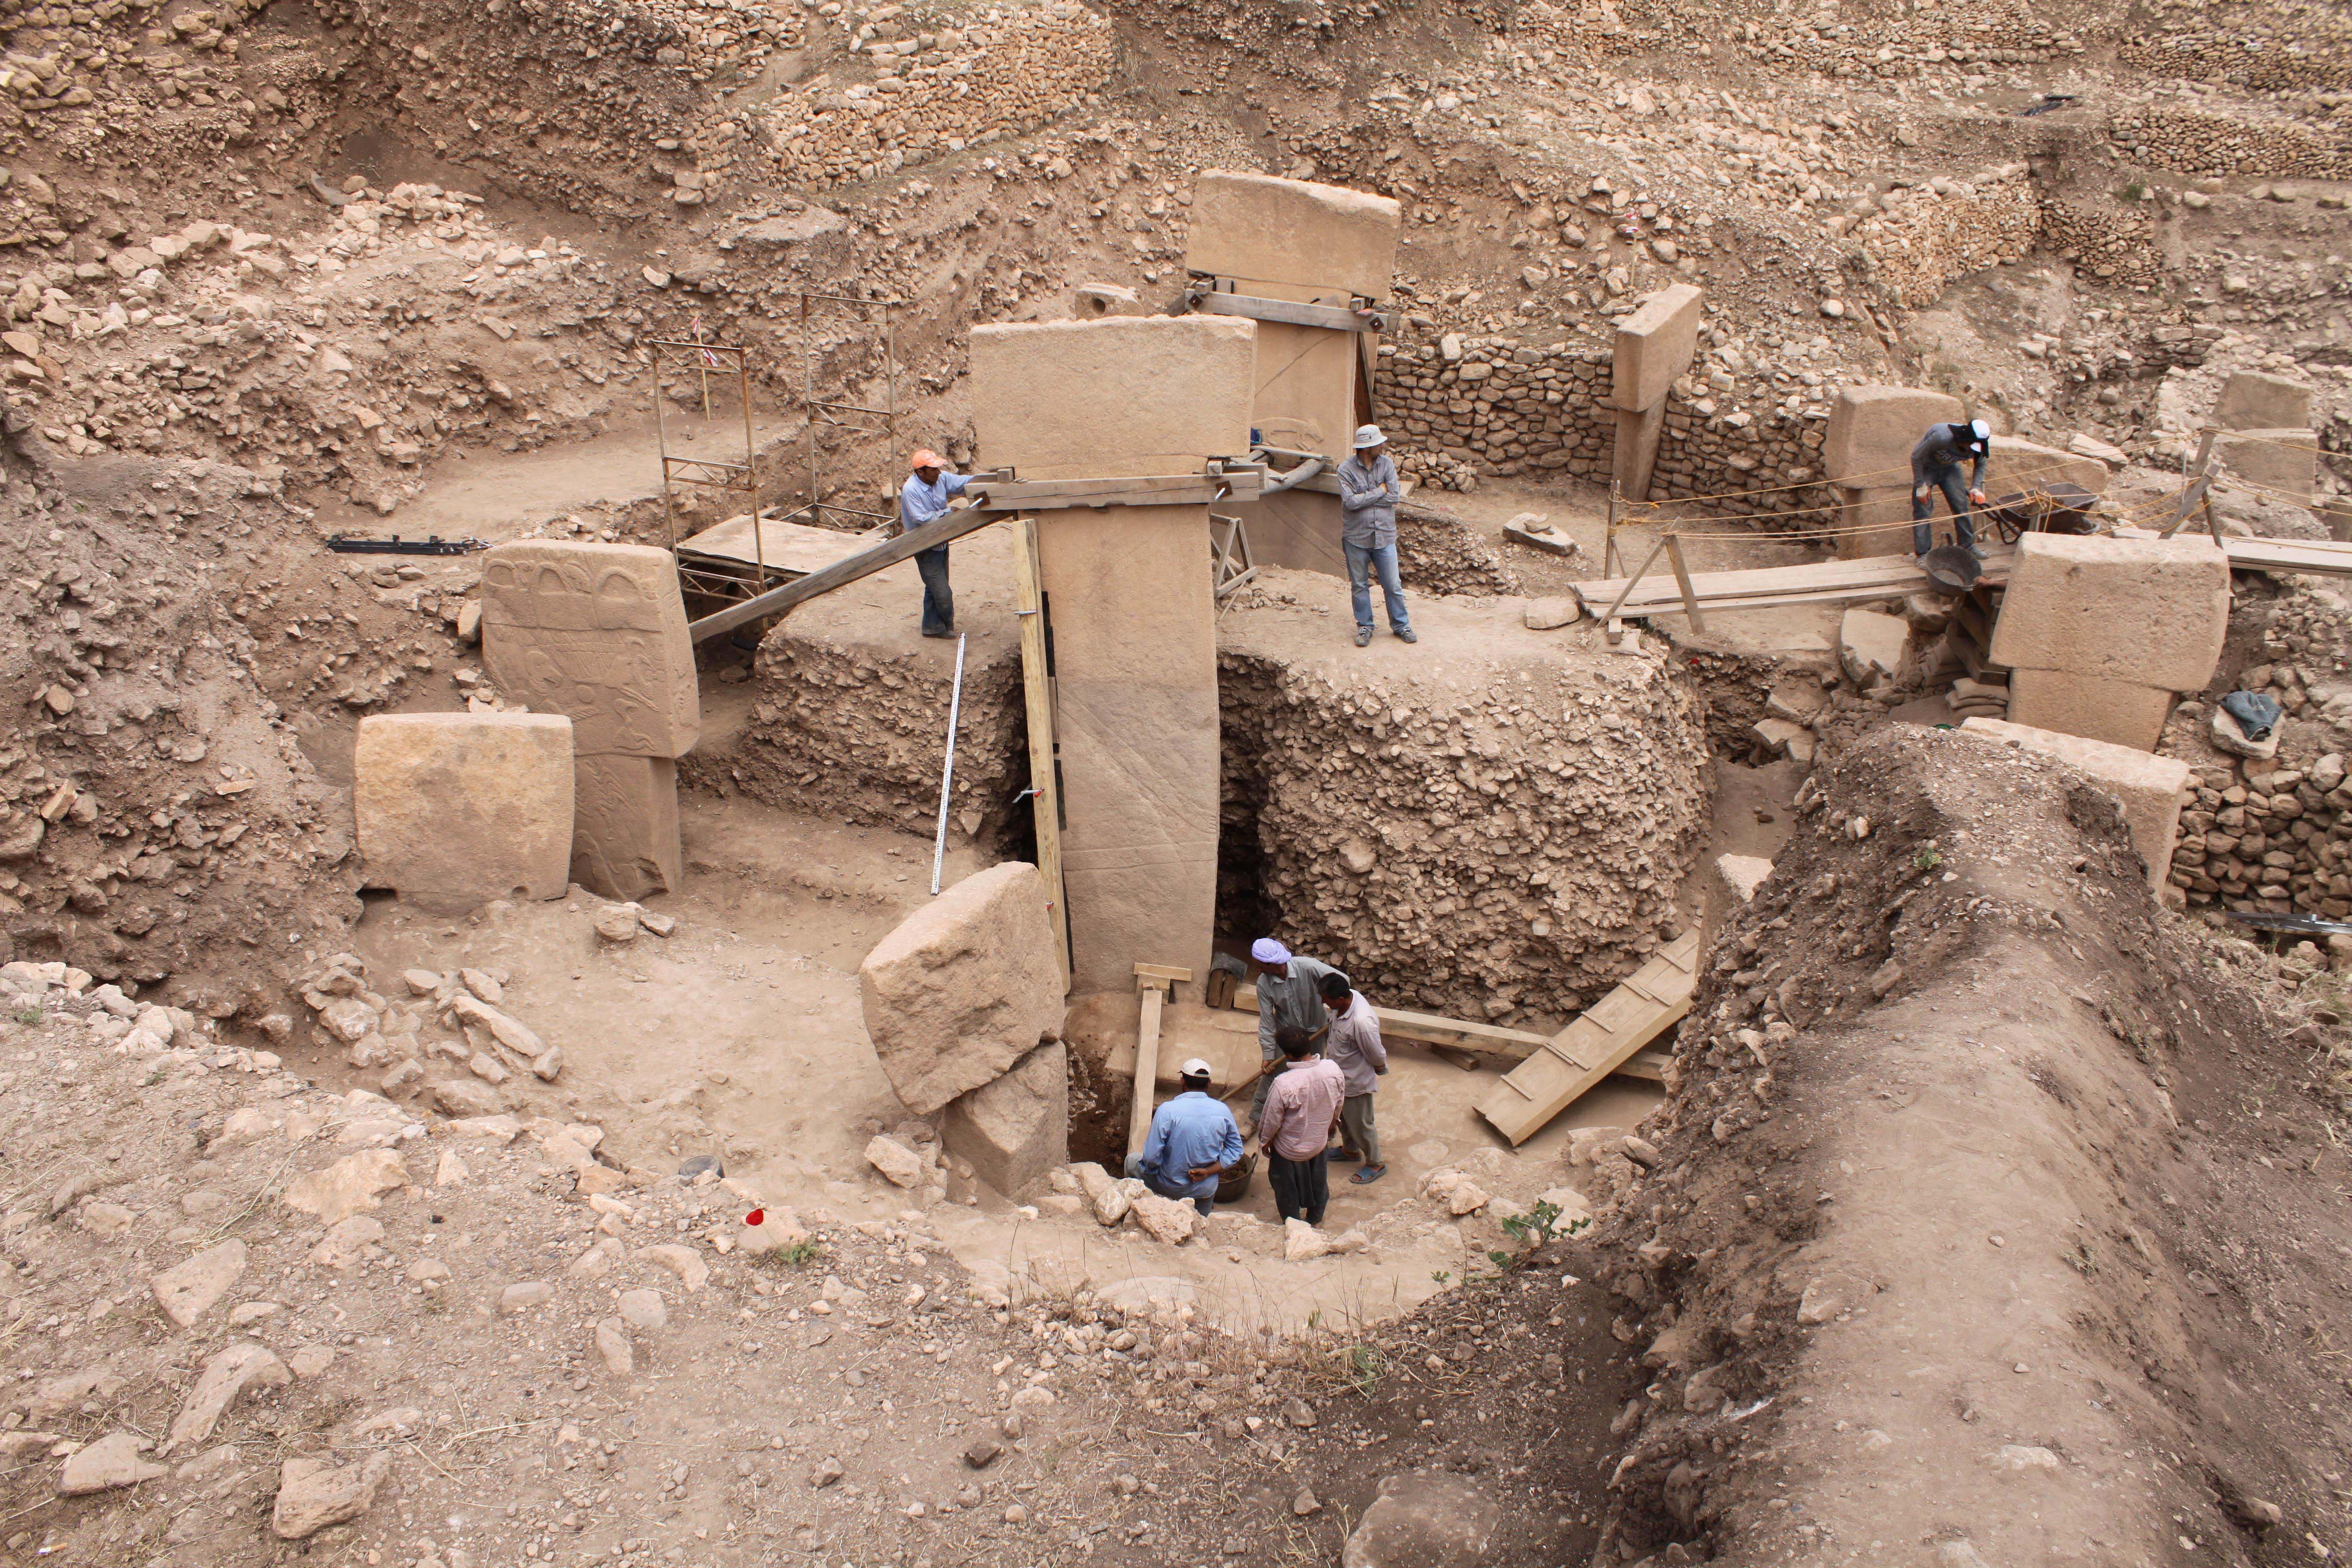 (Photo: DAI, O. Dietrich). What Is Göbekli Tepe ...